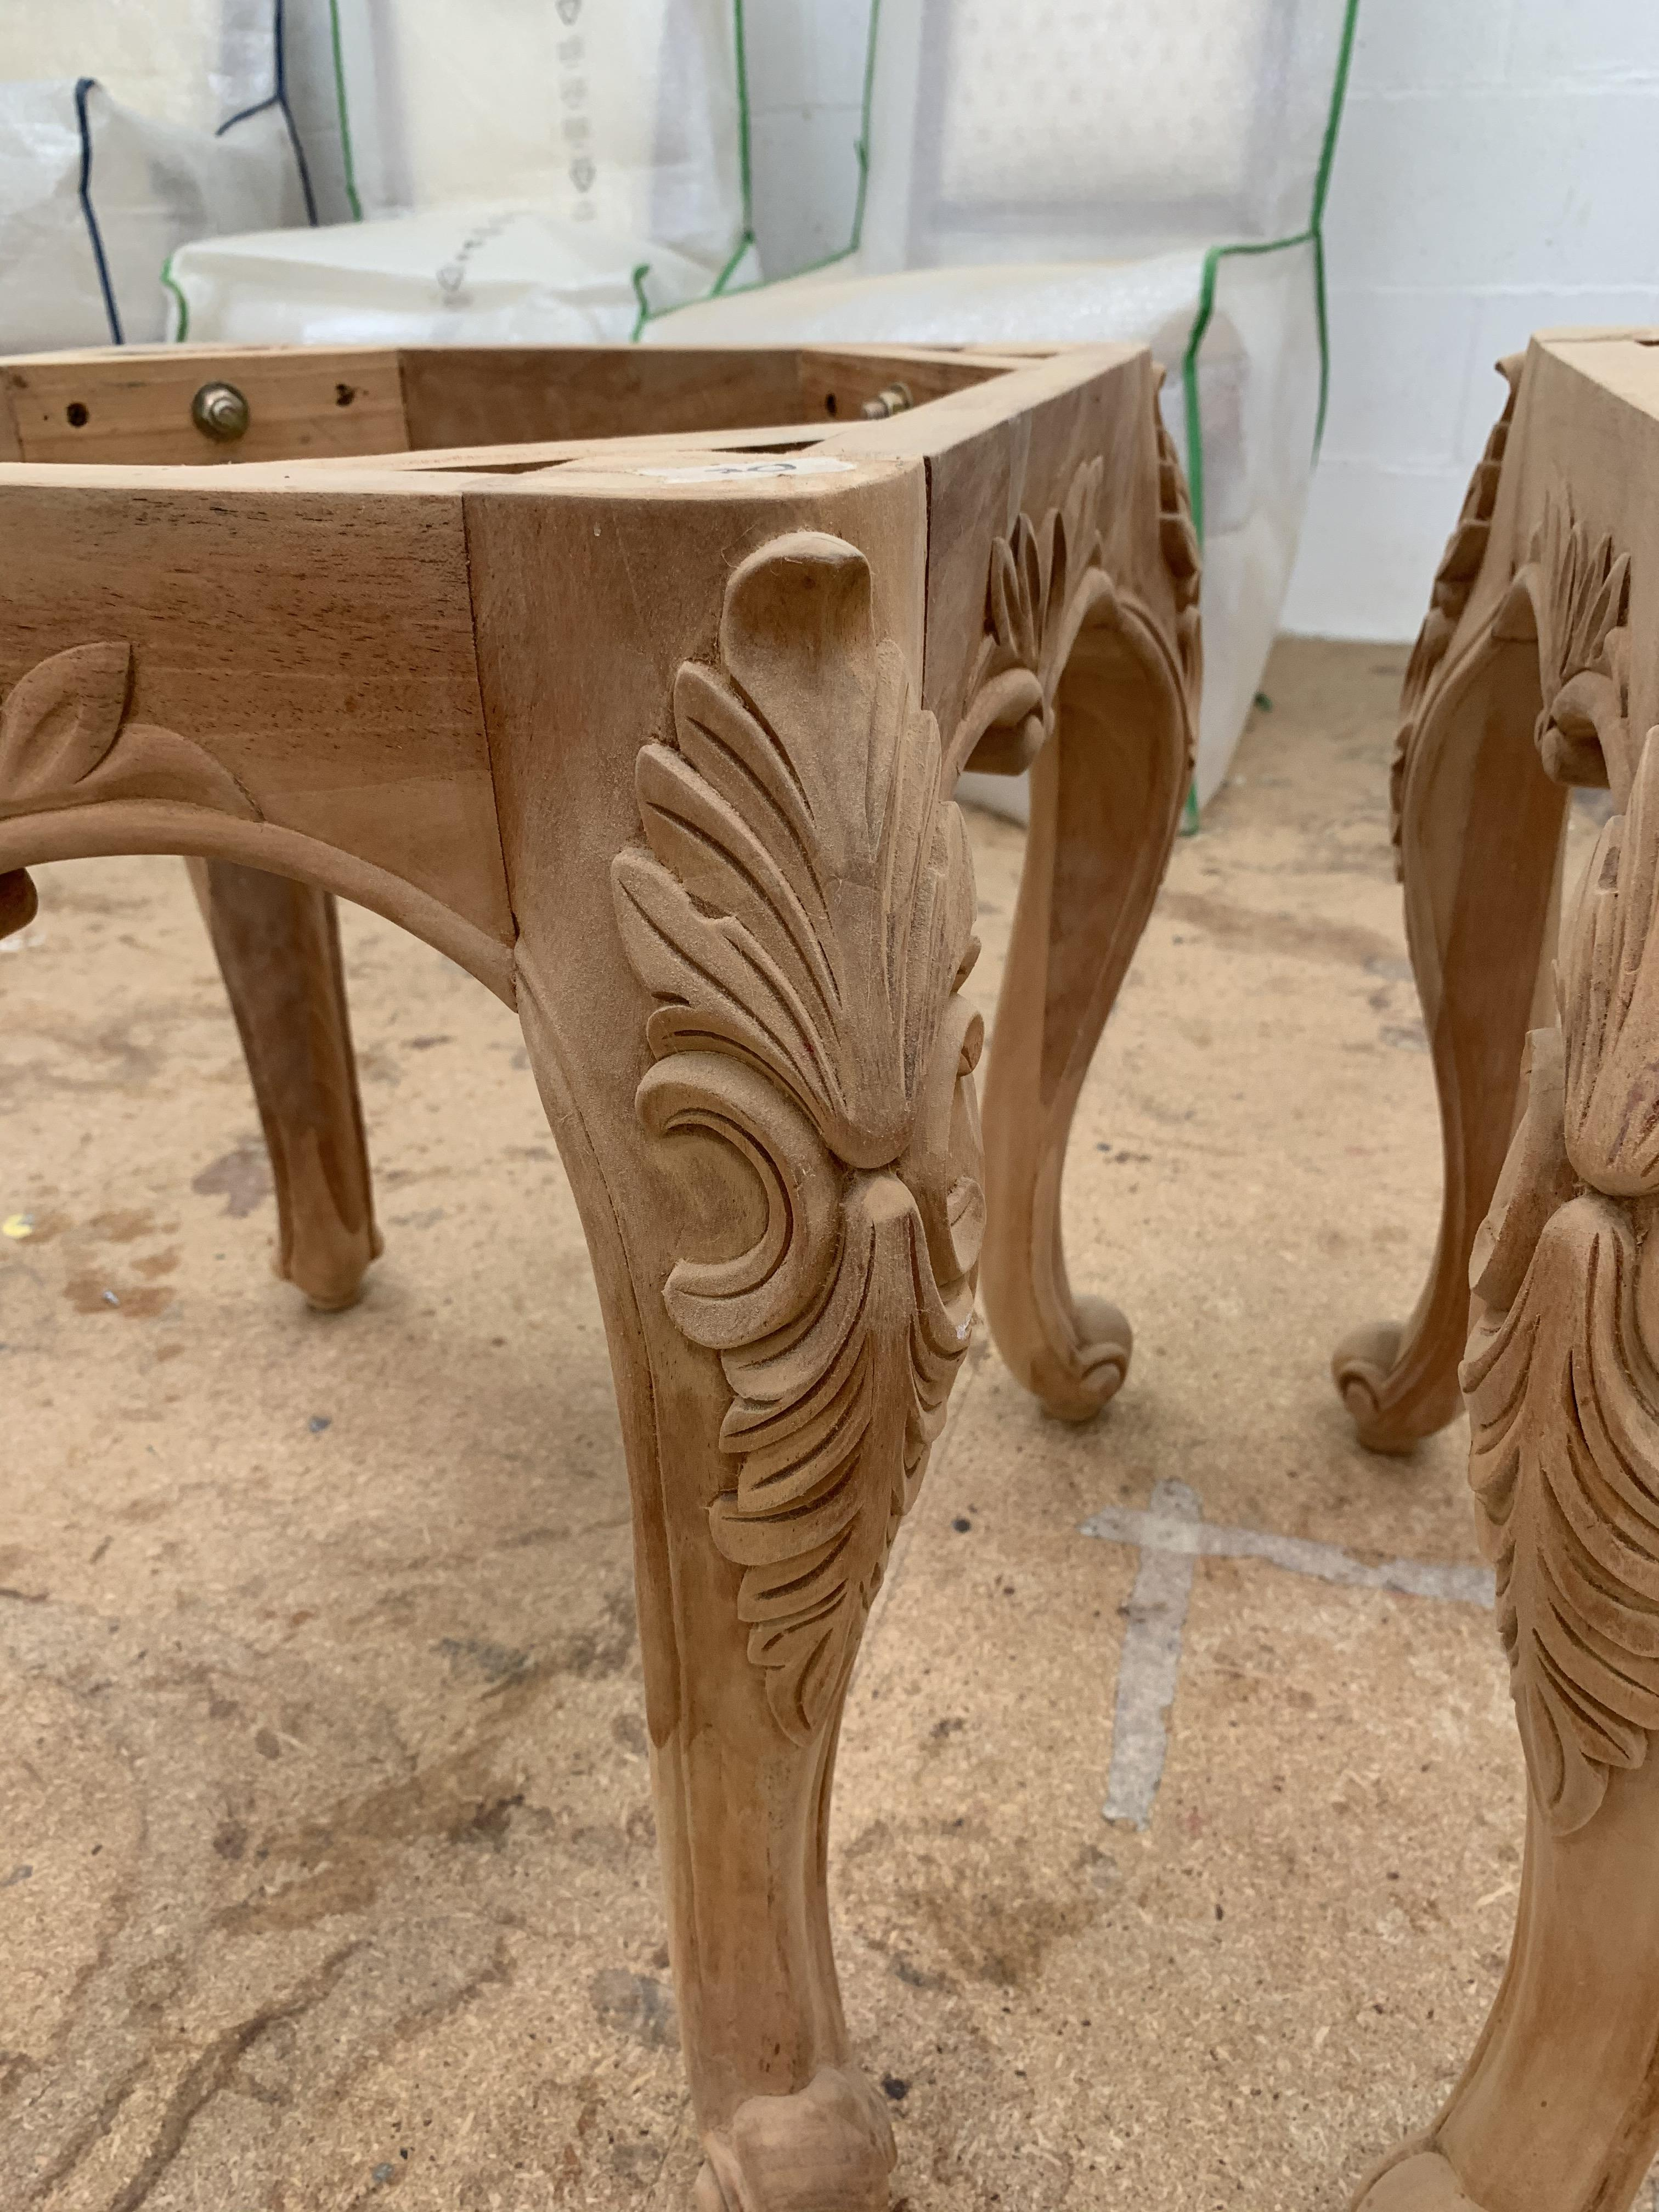 Lot 52 - Carved square small Table or Stool base, approx 2', requires finishing/polshing.